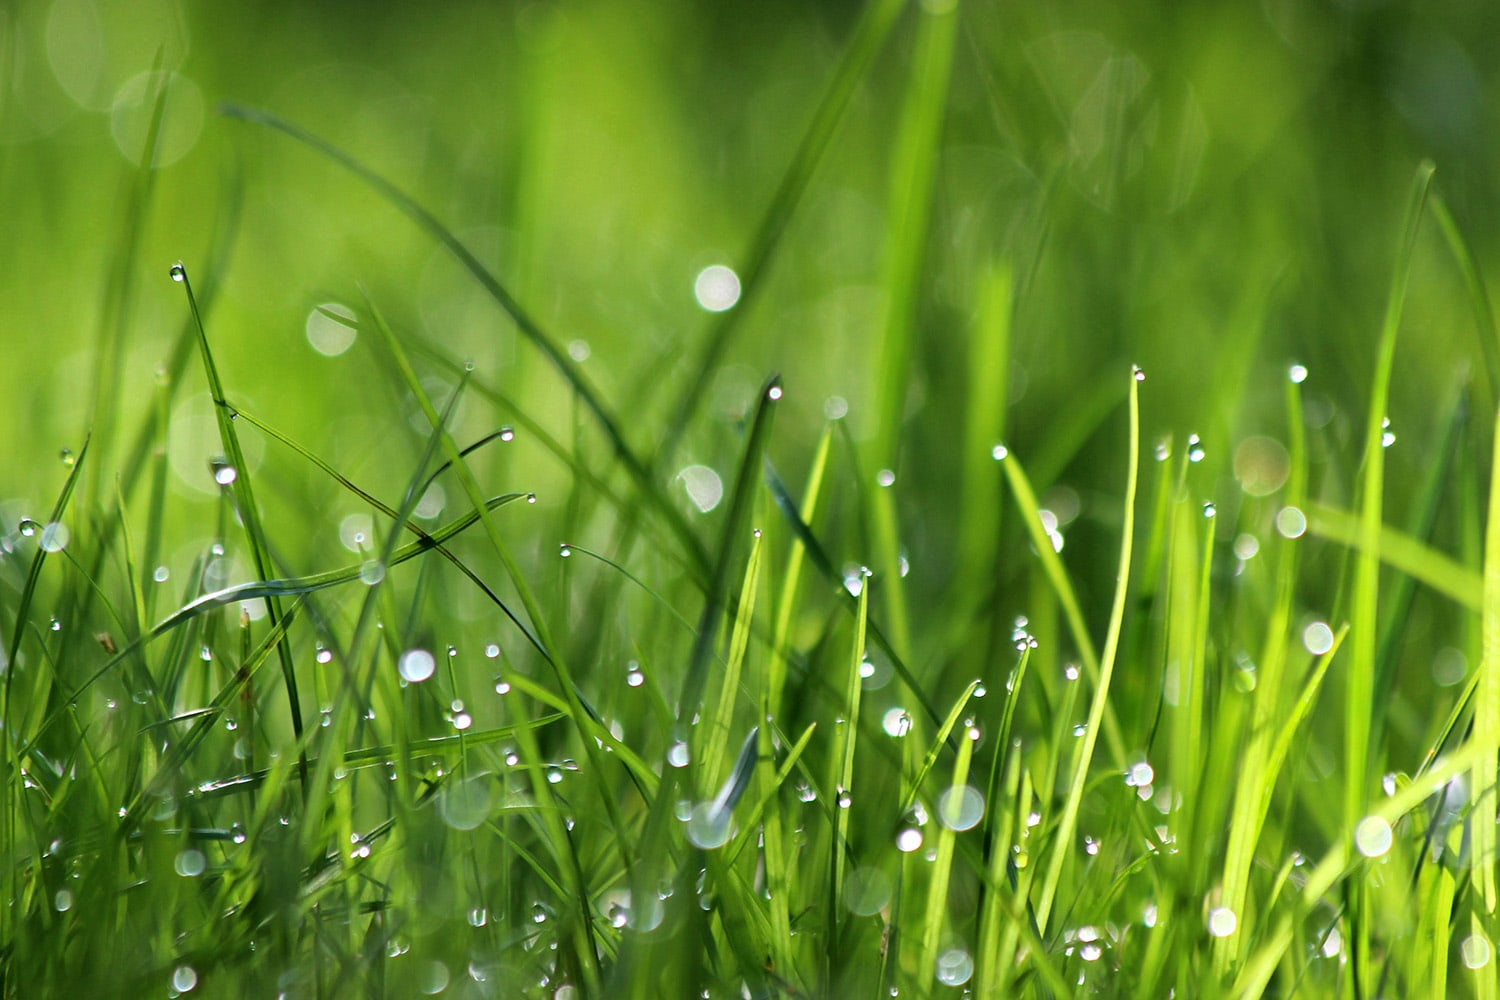 <p>Blades of grass with drops of water</p>